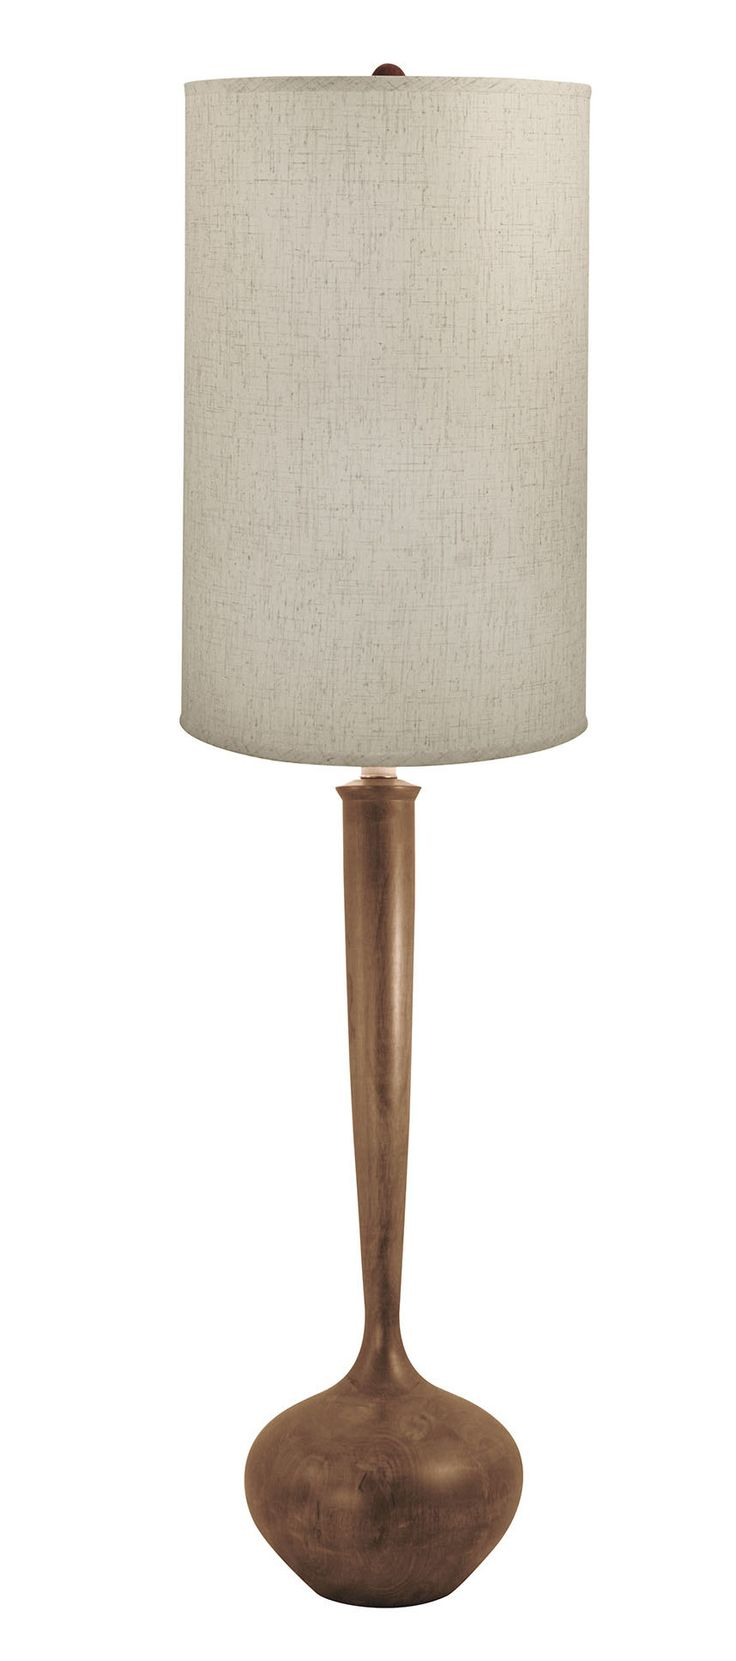 "Mabel Wooden Tulip LED 64"" Floor Lamp"